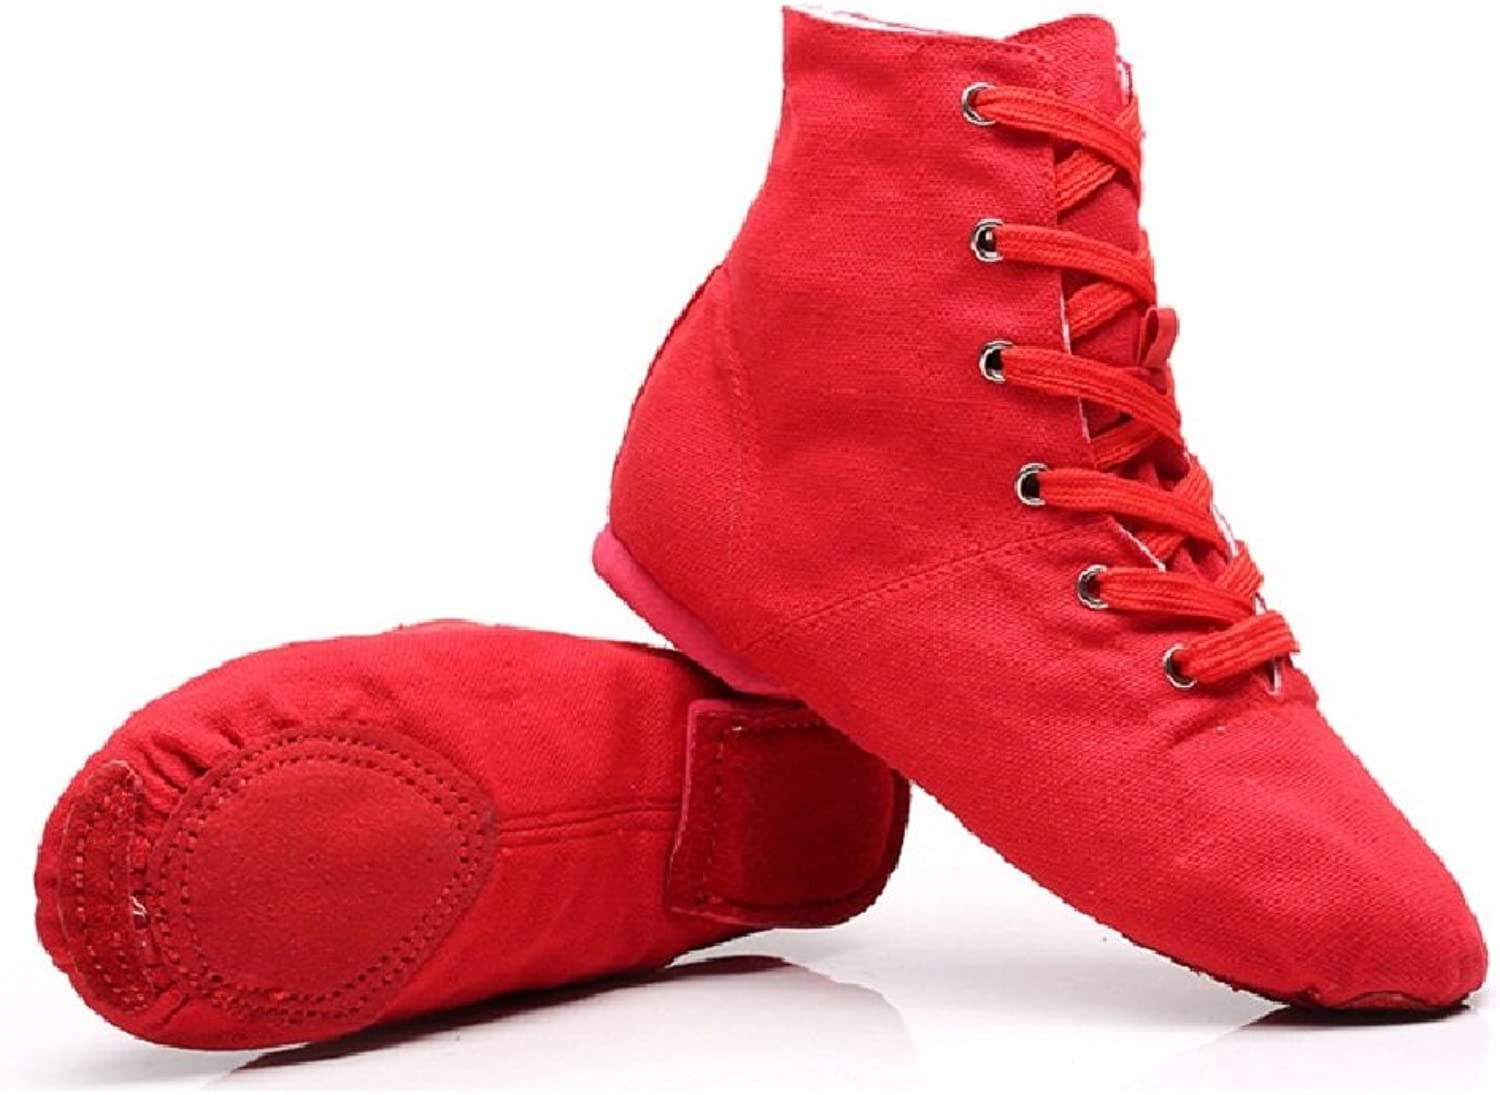 NLeahershoe Unisex Canvas Dance shoes Lace-up Jazz High Boots for Practice, Red